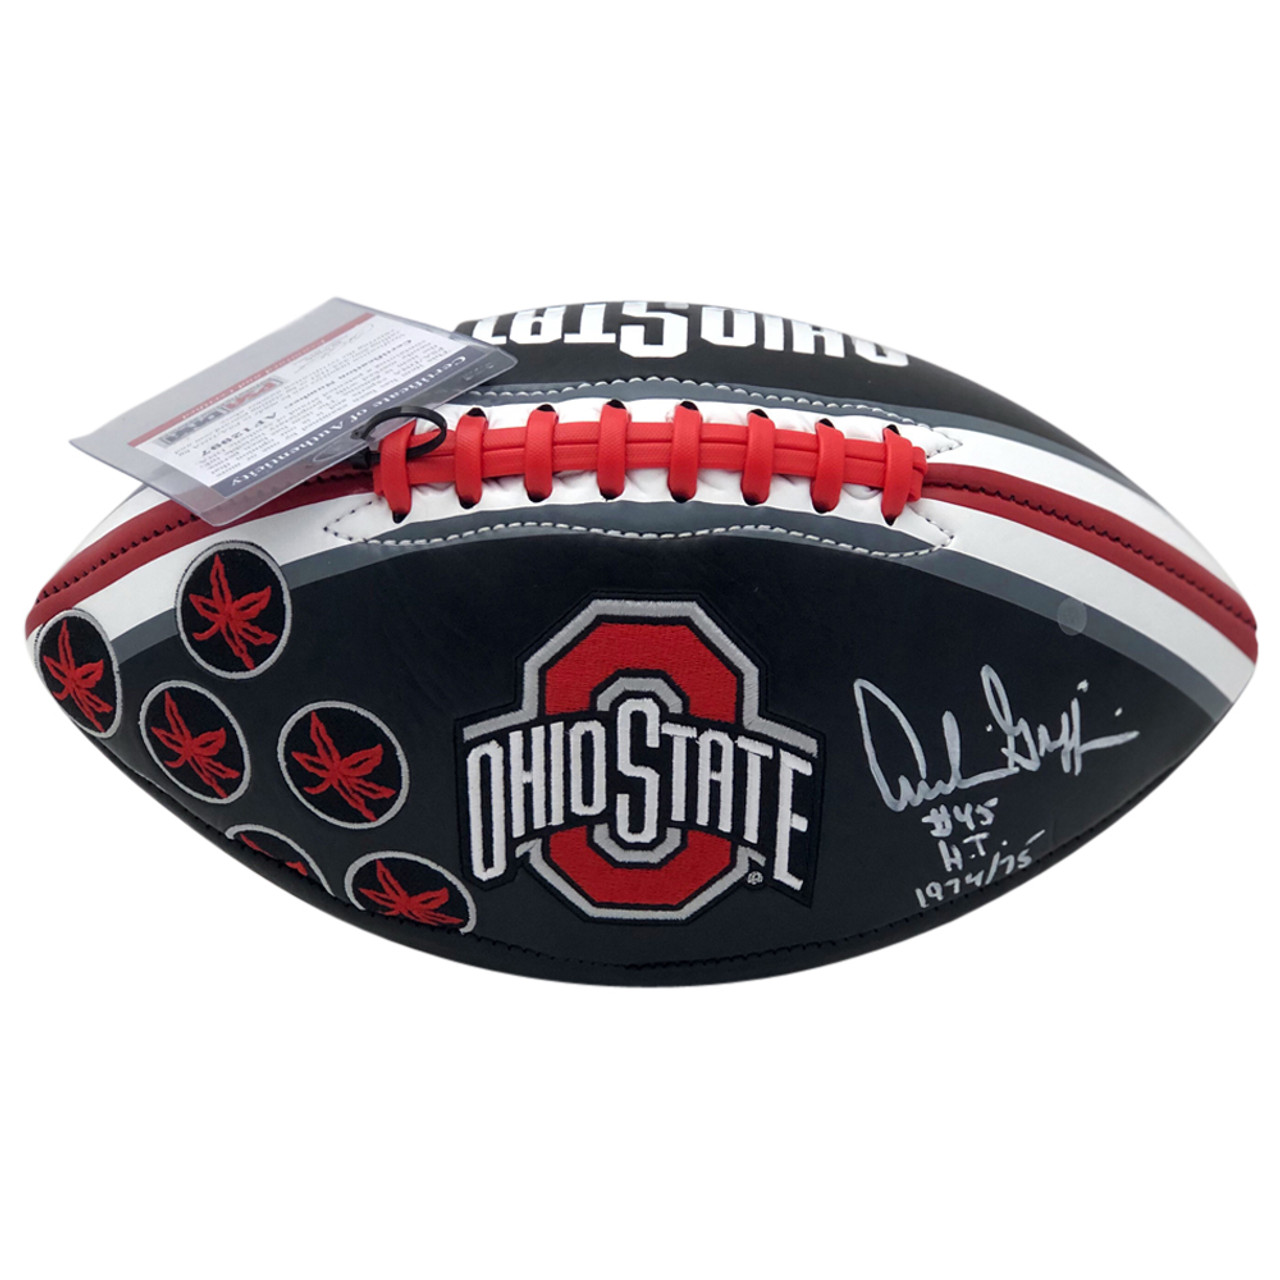 466b606c5a9 Archie Griffin Ohio State Buckeyes Autographed Black Football - PSA  Authentic